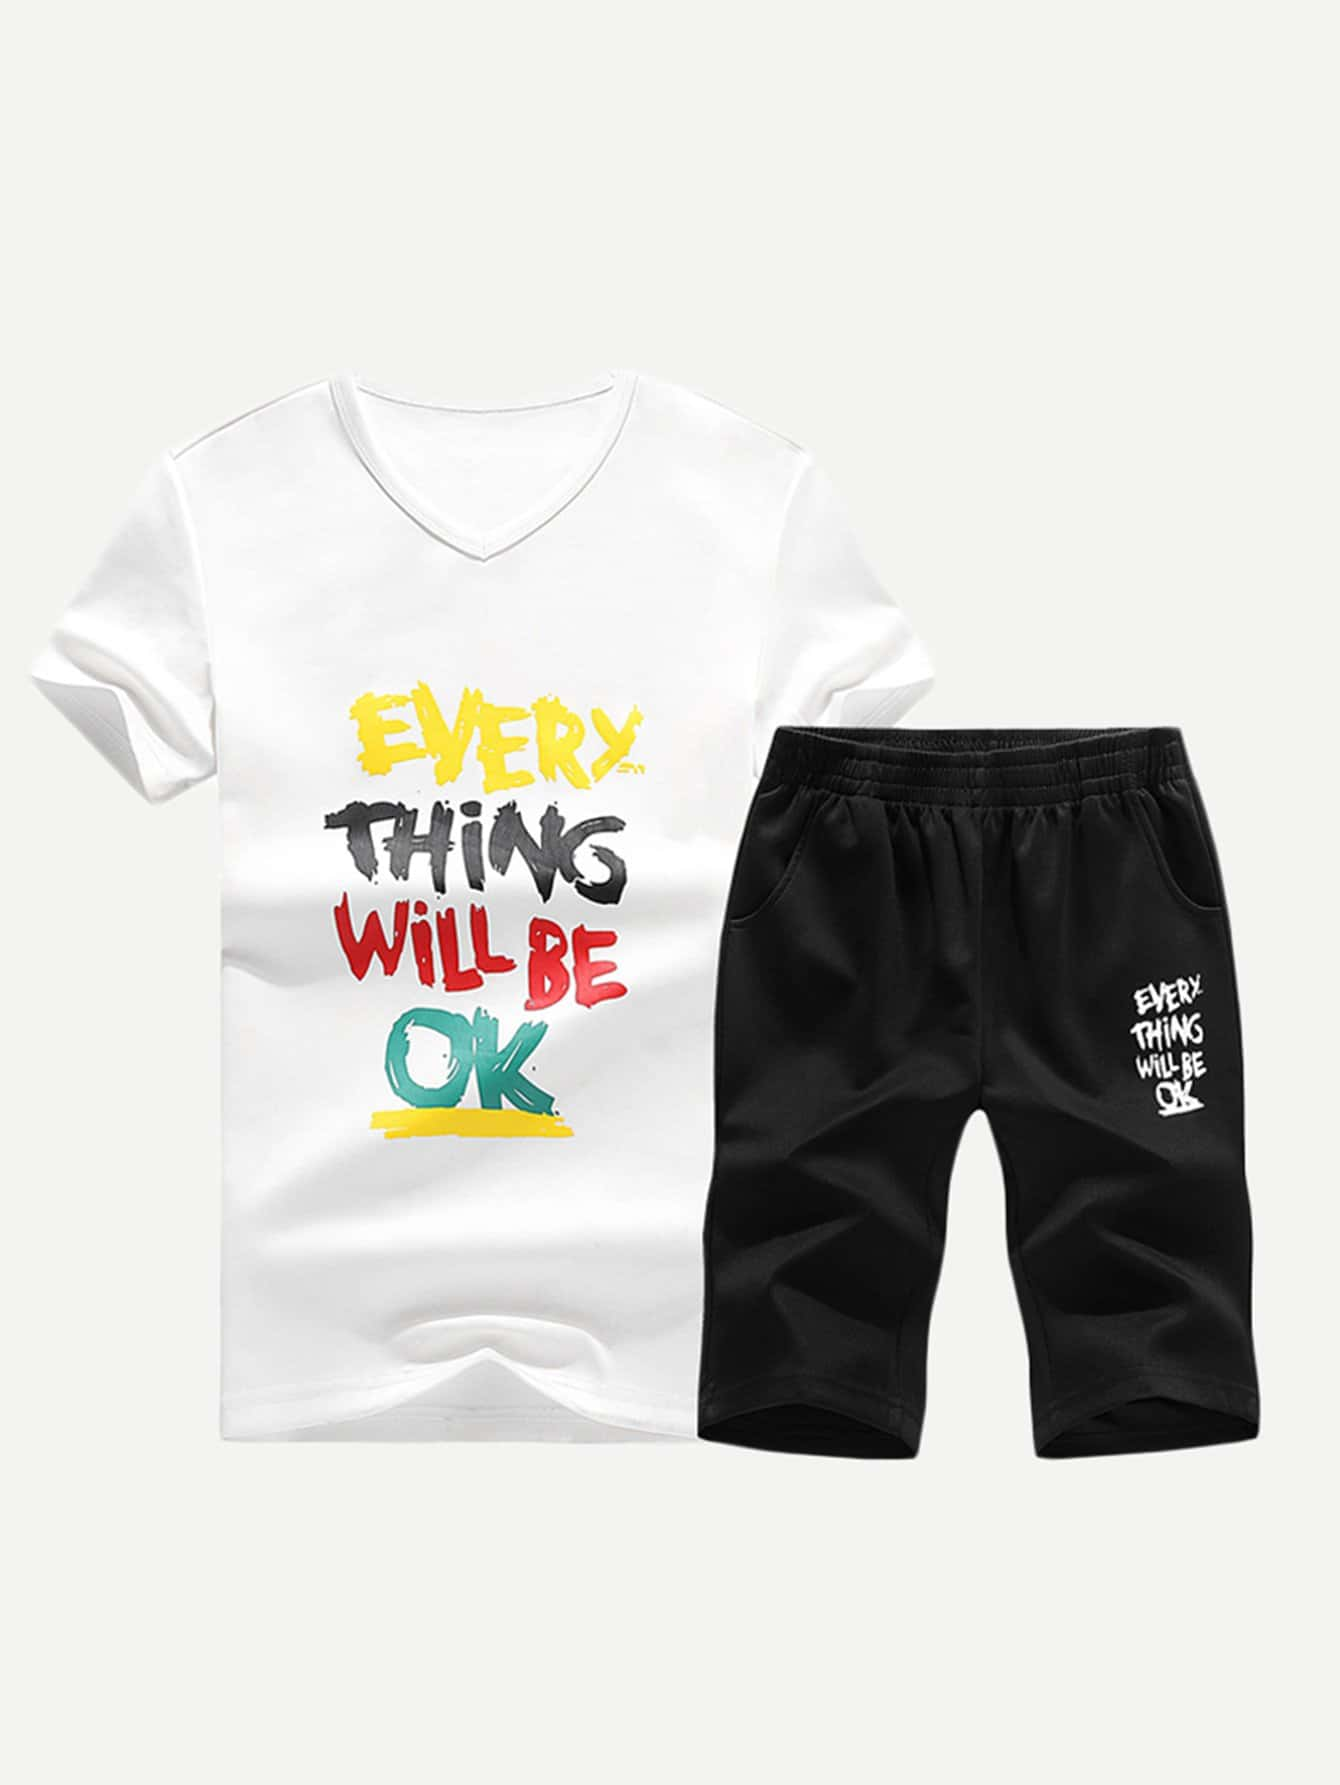 Men Colorful Letter Print Tee With Shorts dinosaur print tee with shorts